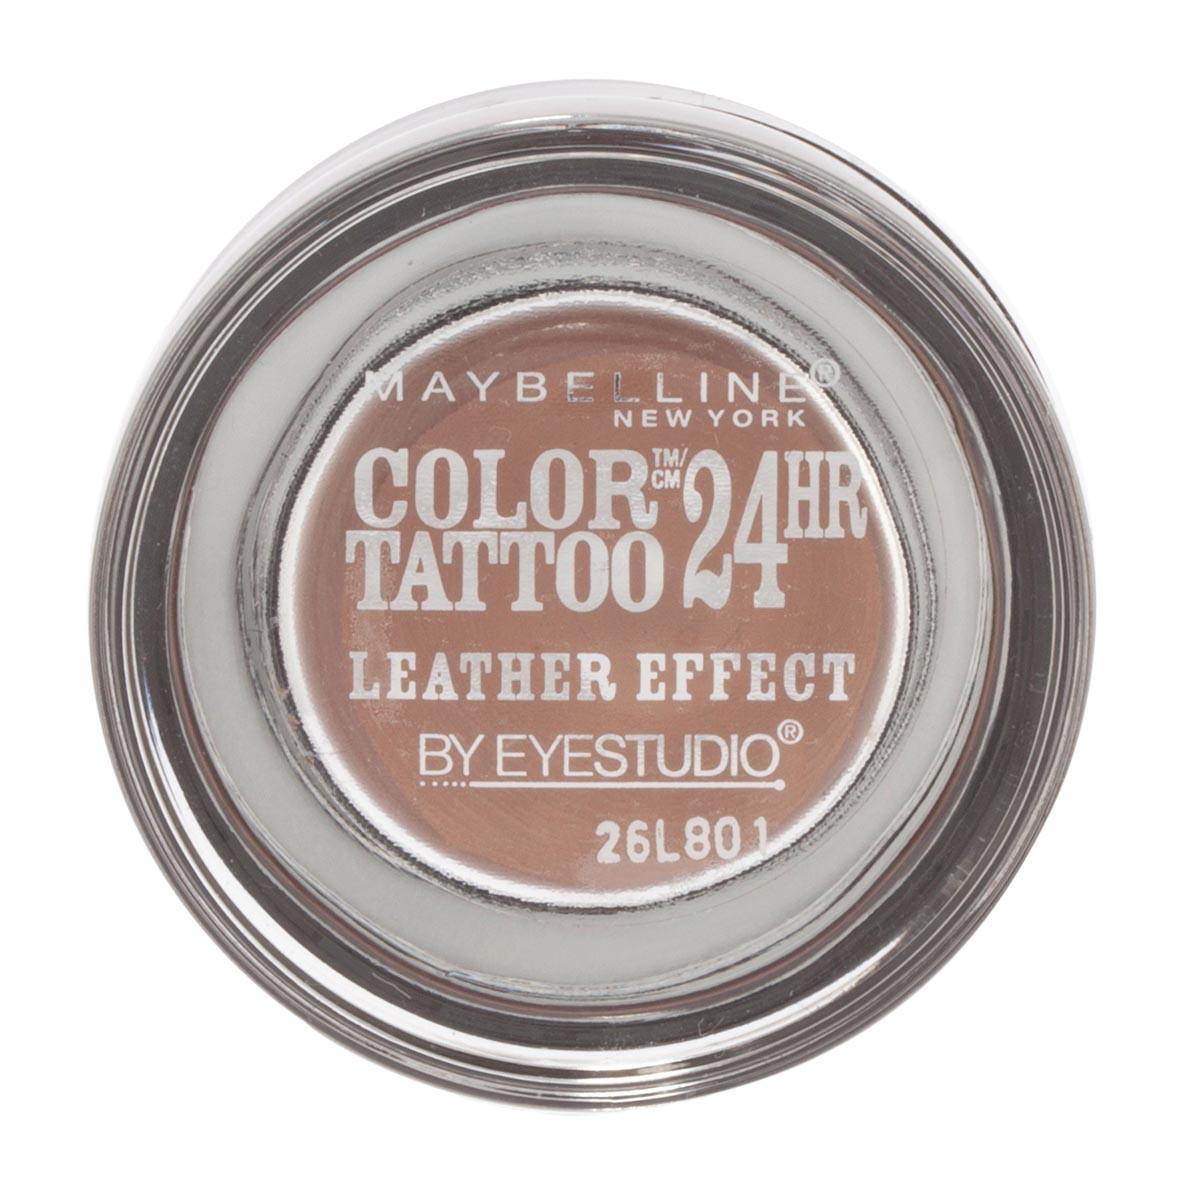 Maybelline fragrances Color Tattoo 24H 098